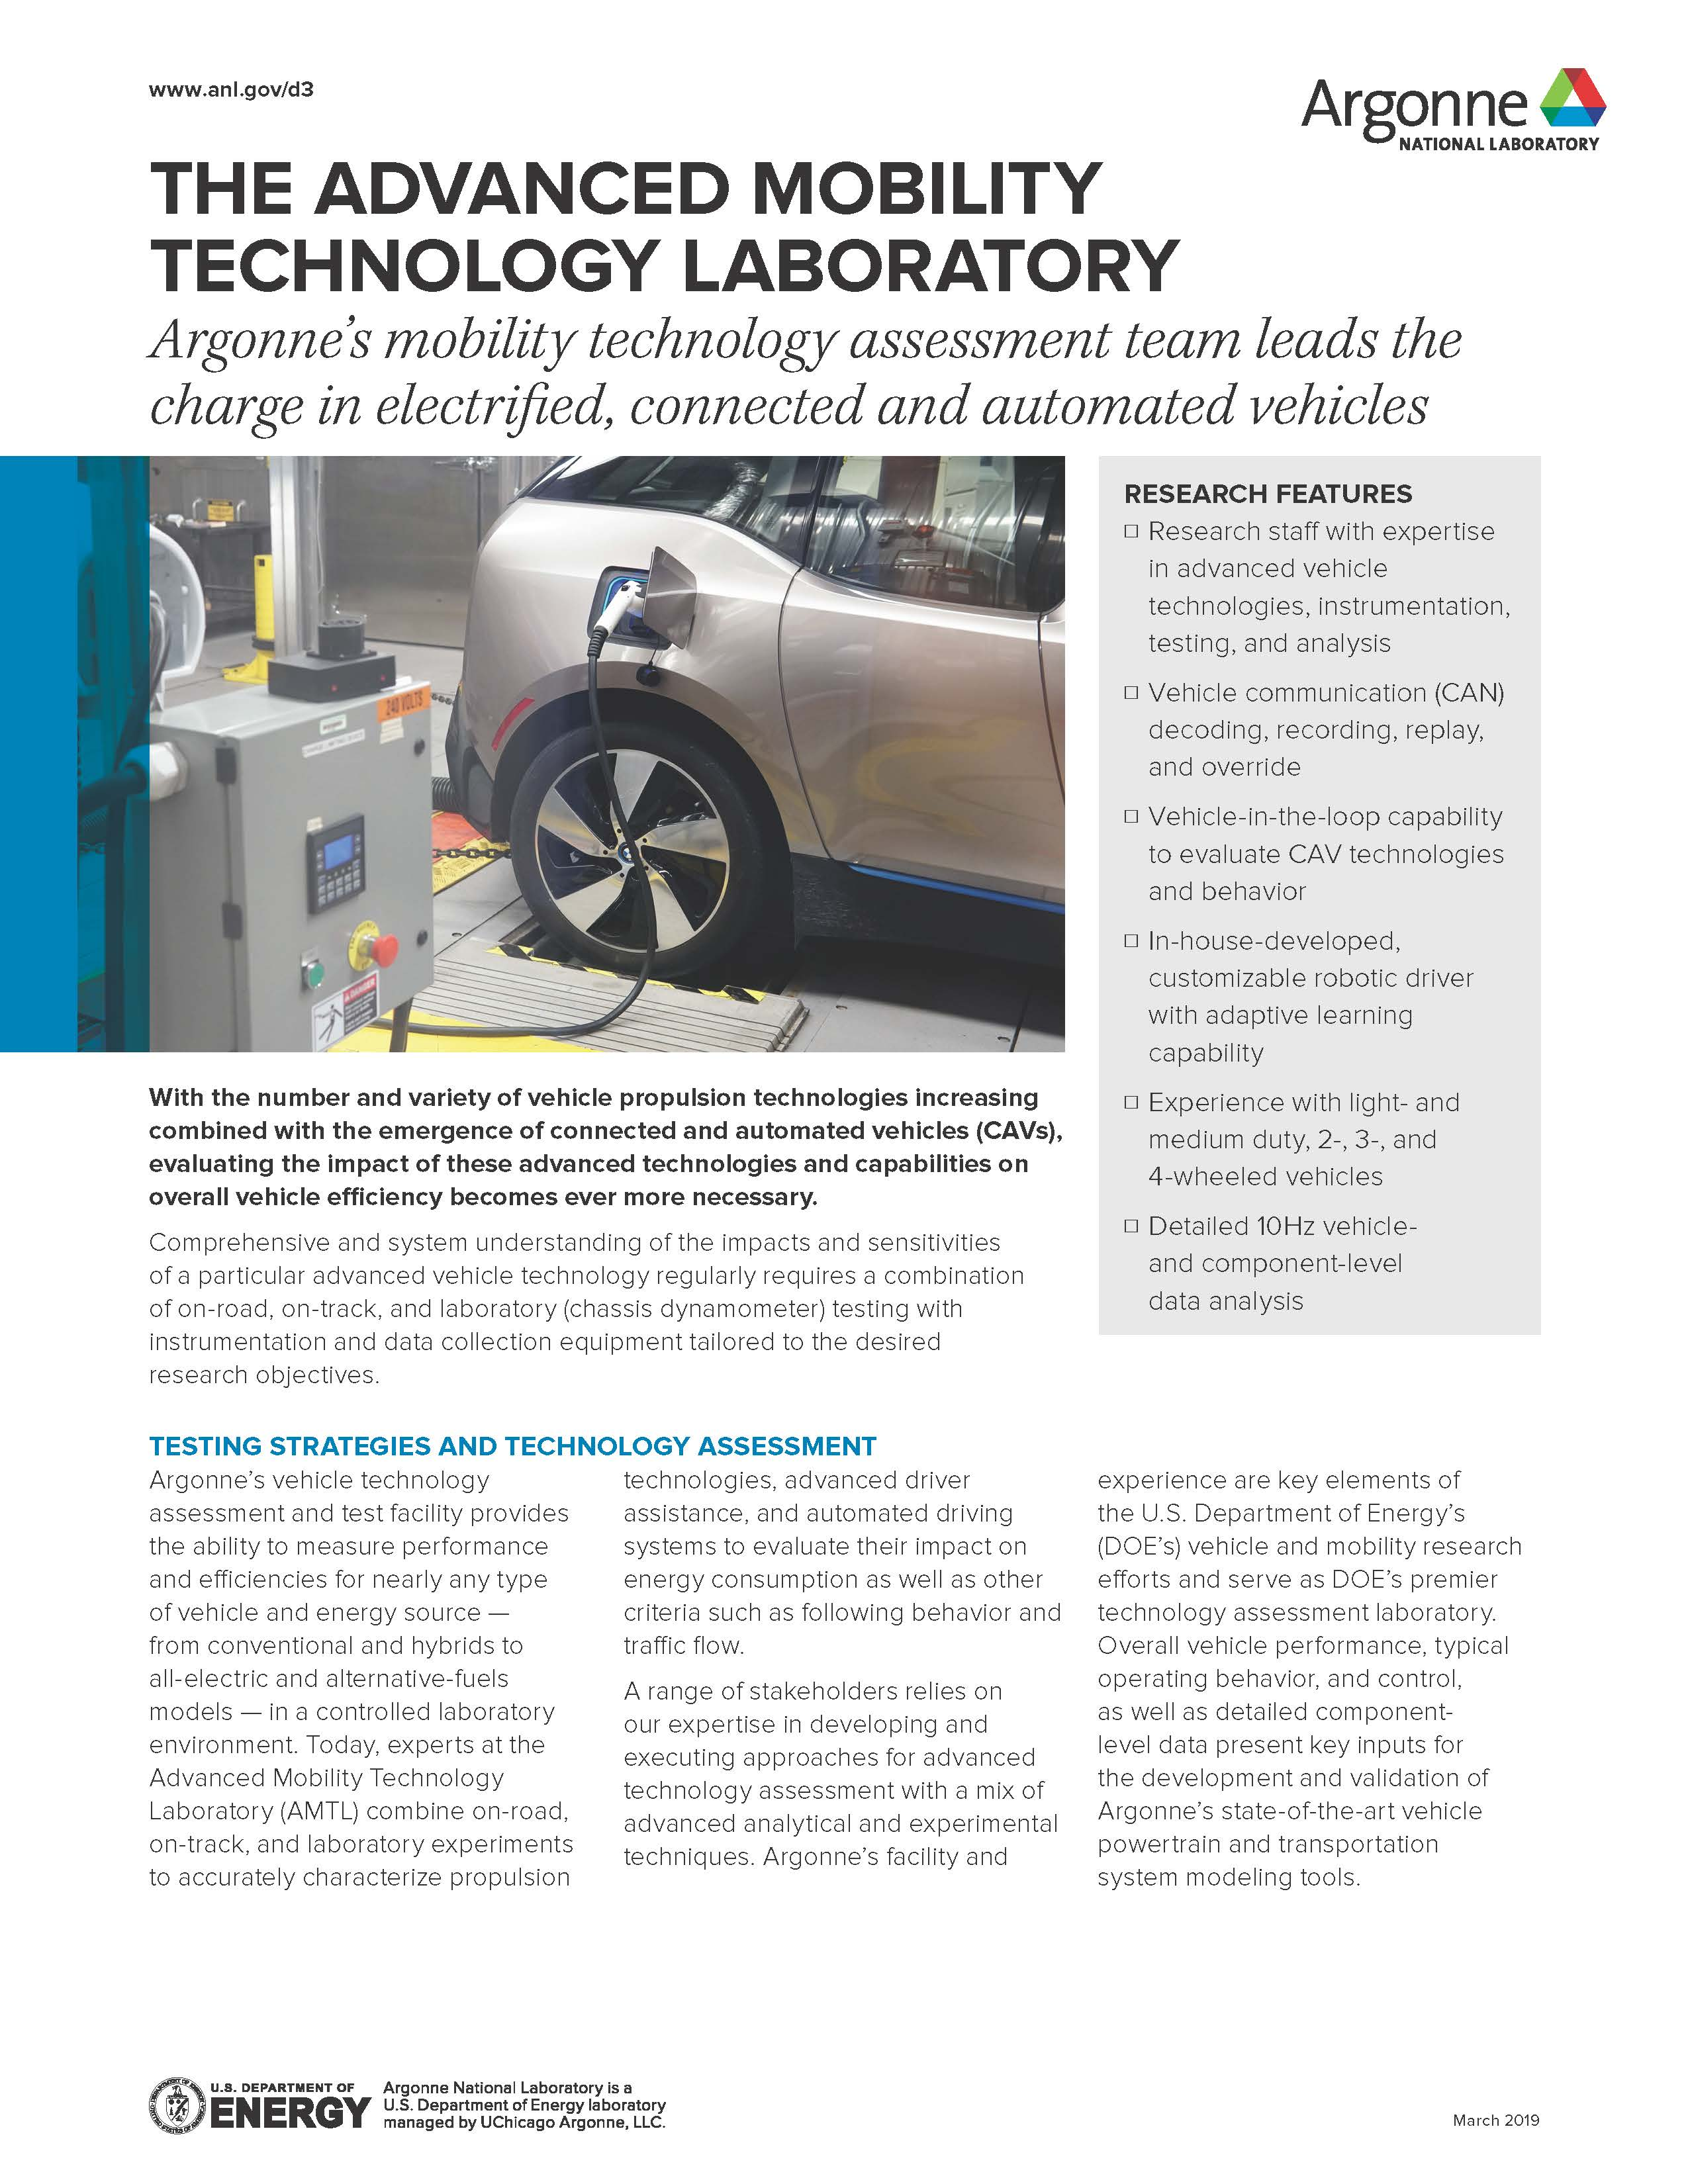 image of the front page of the Advanced Mobility Technology Laboratory fact sheet